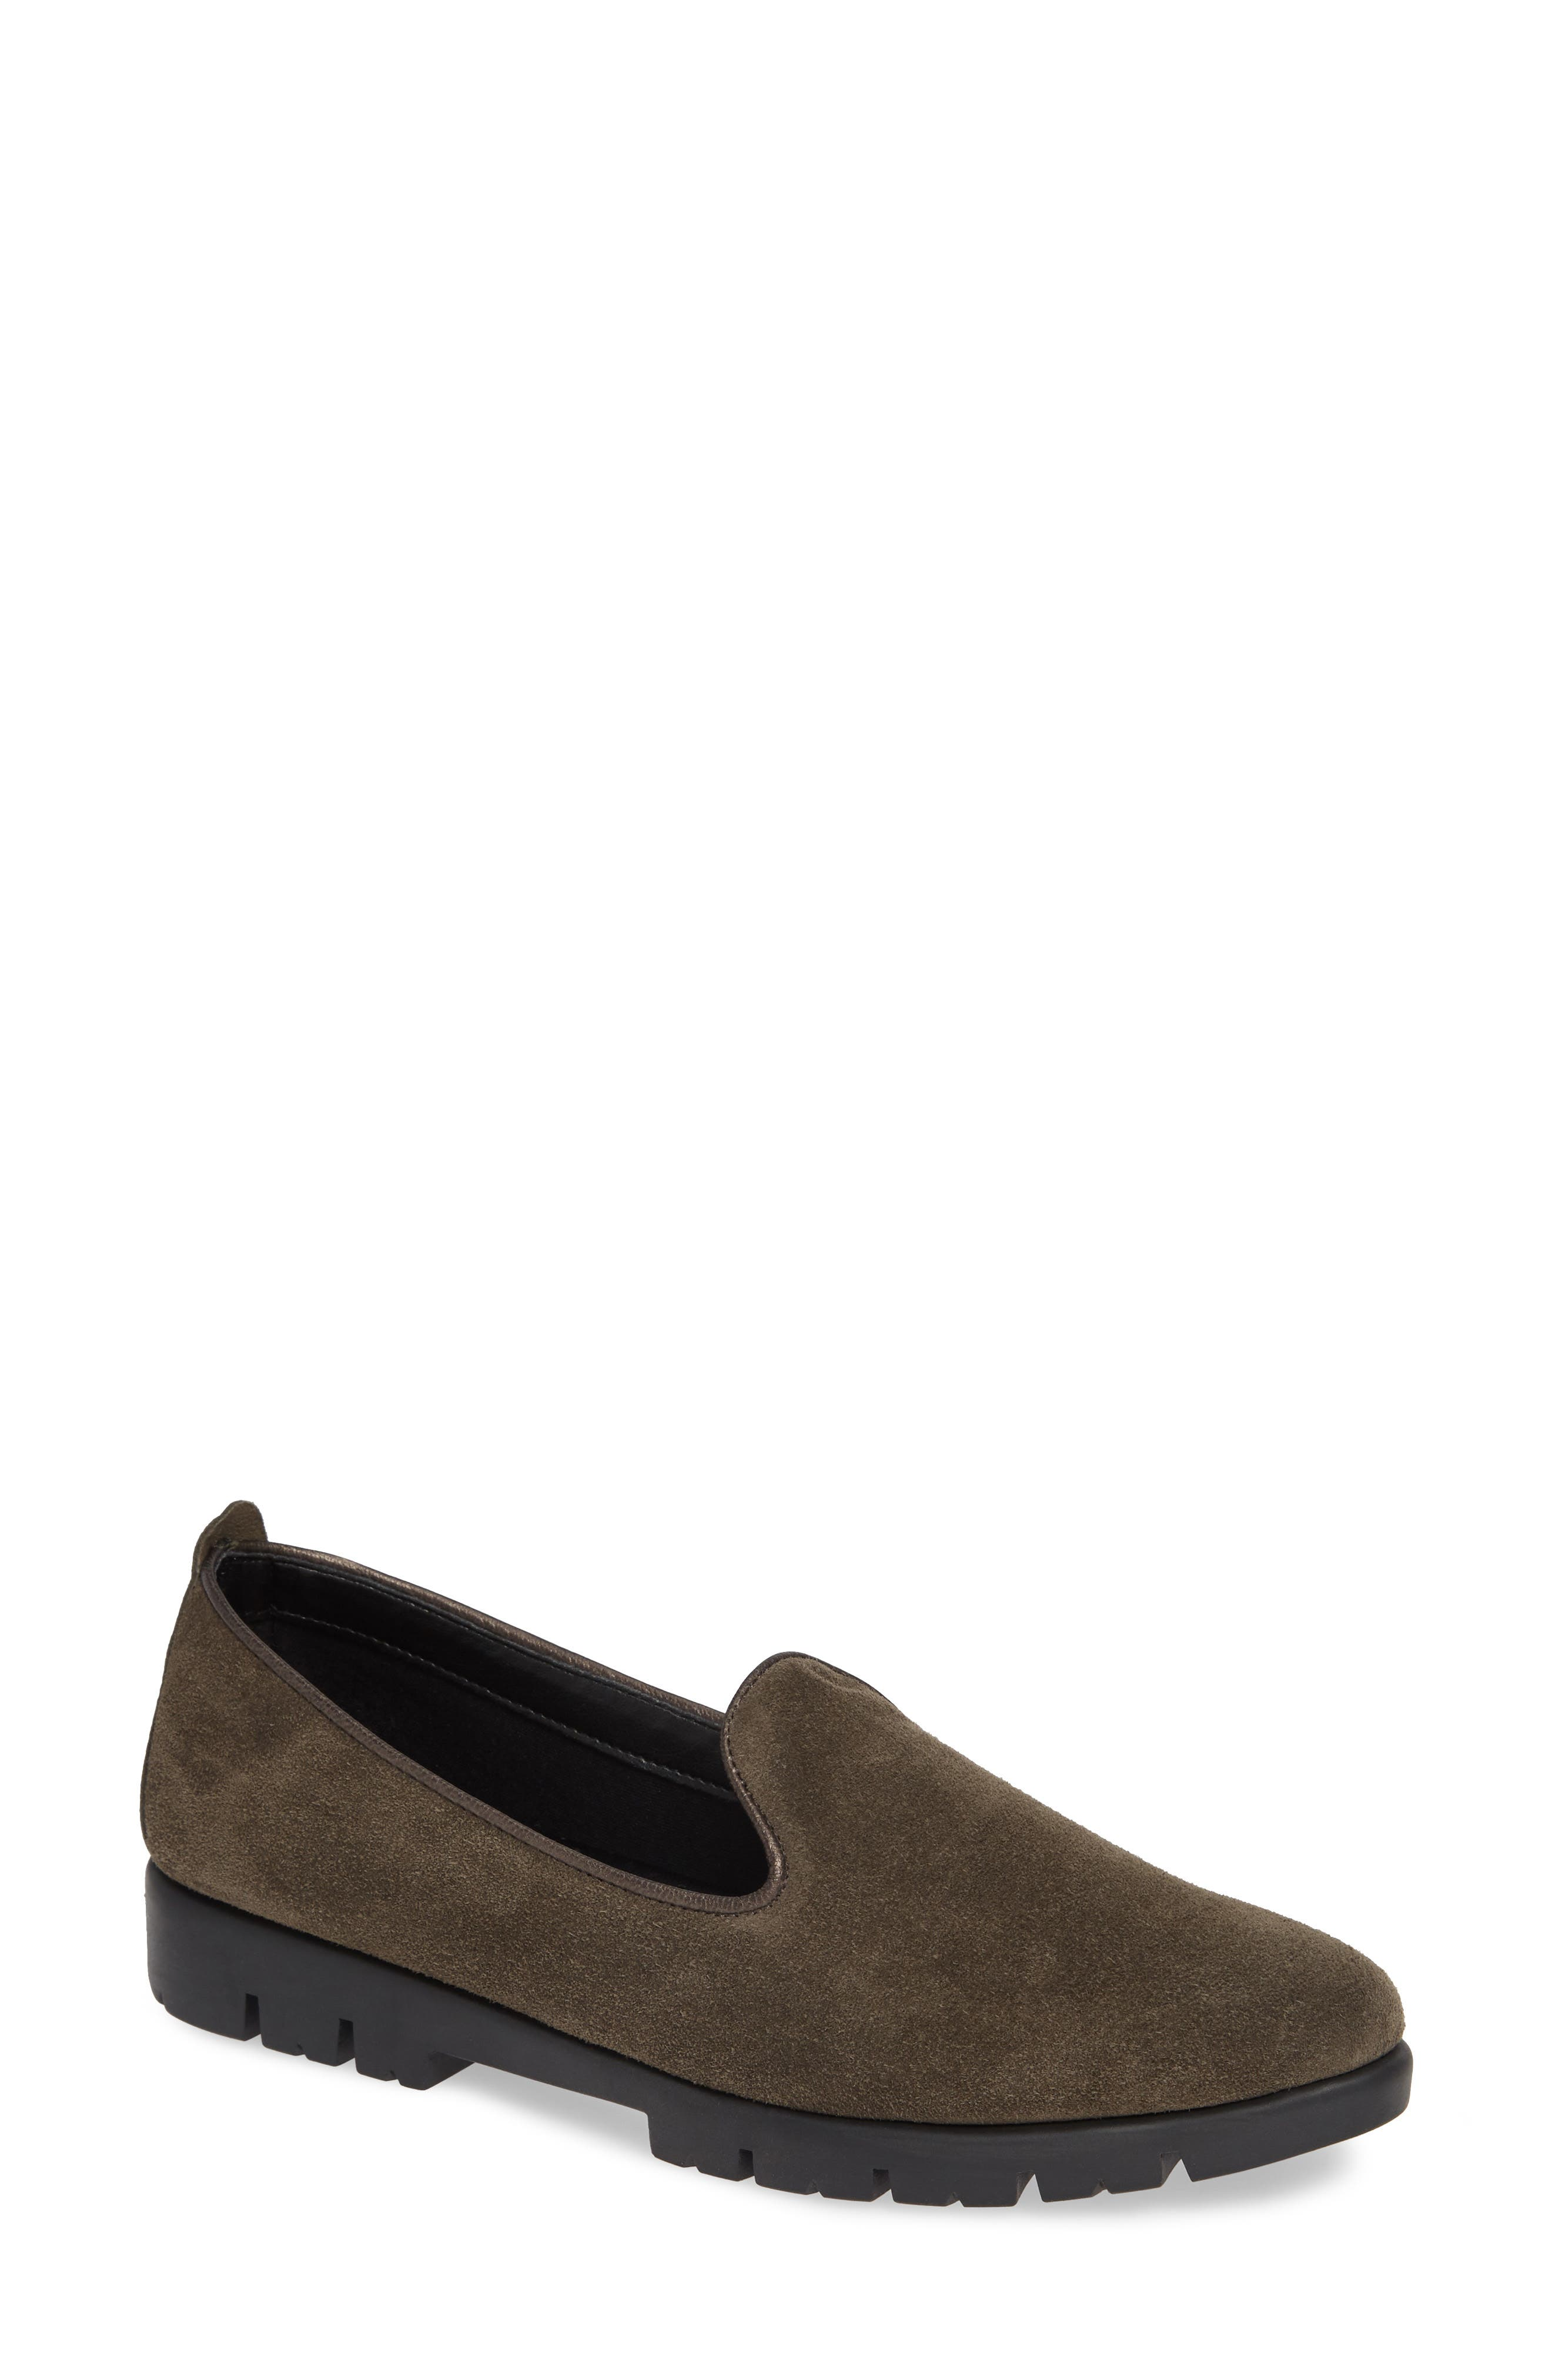 Smokin' Hot Plush Loafer,                             Main thumbnail 1, color,                             BROWN SUEDE